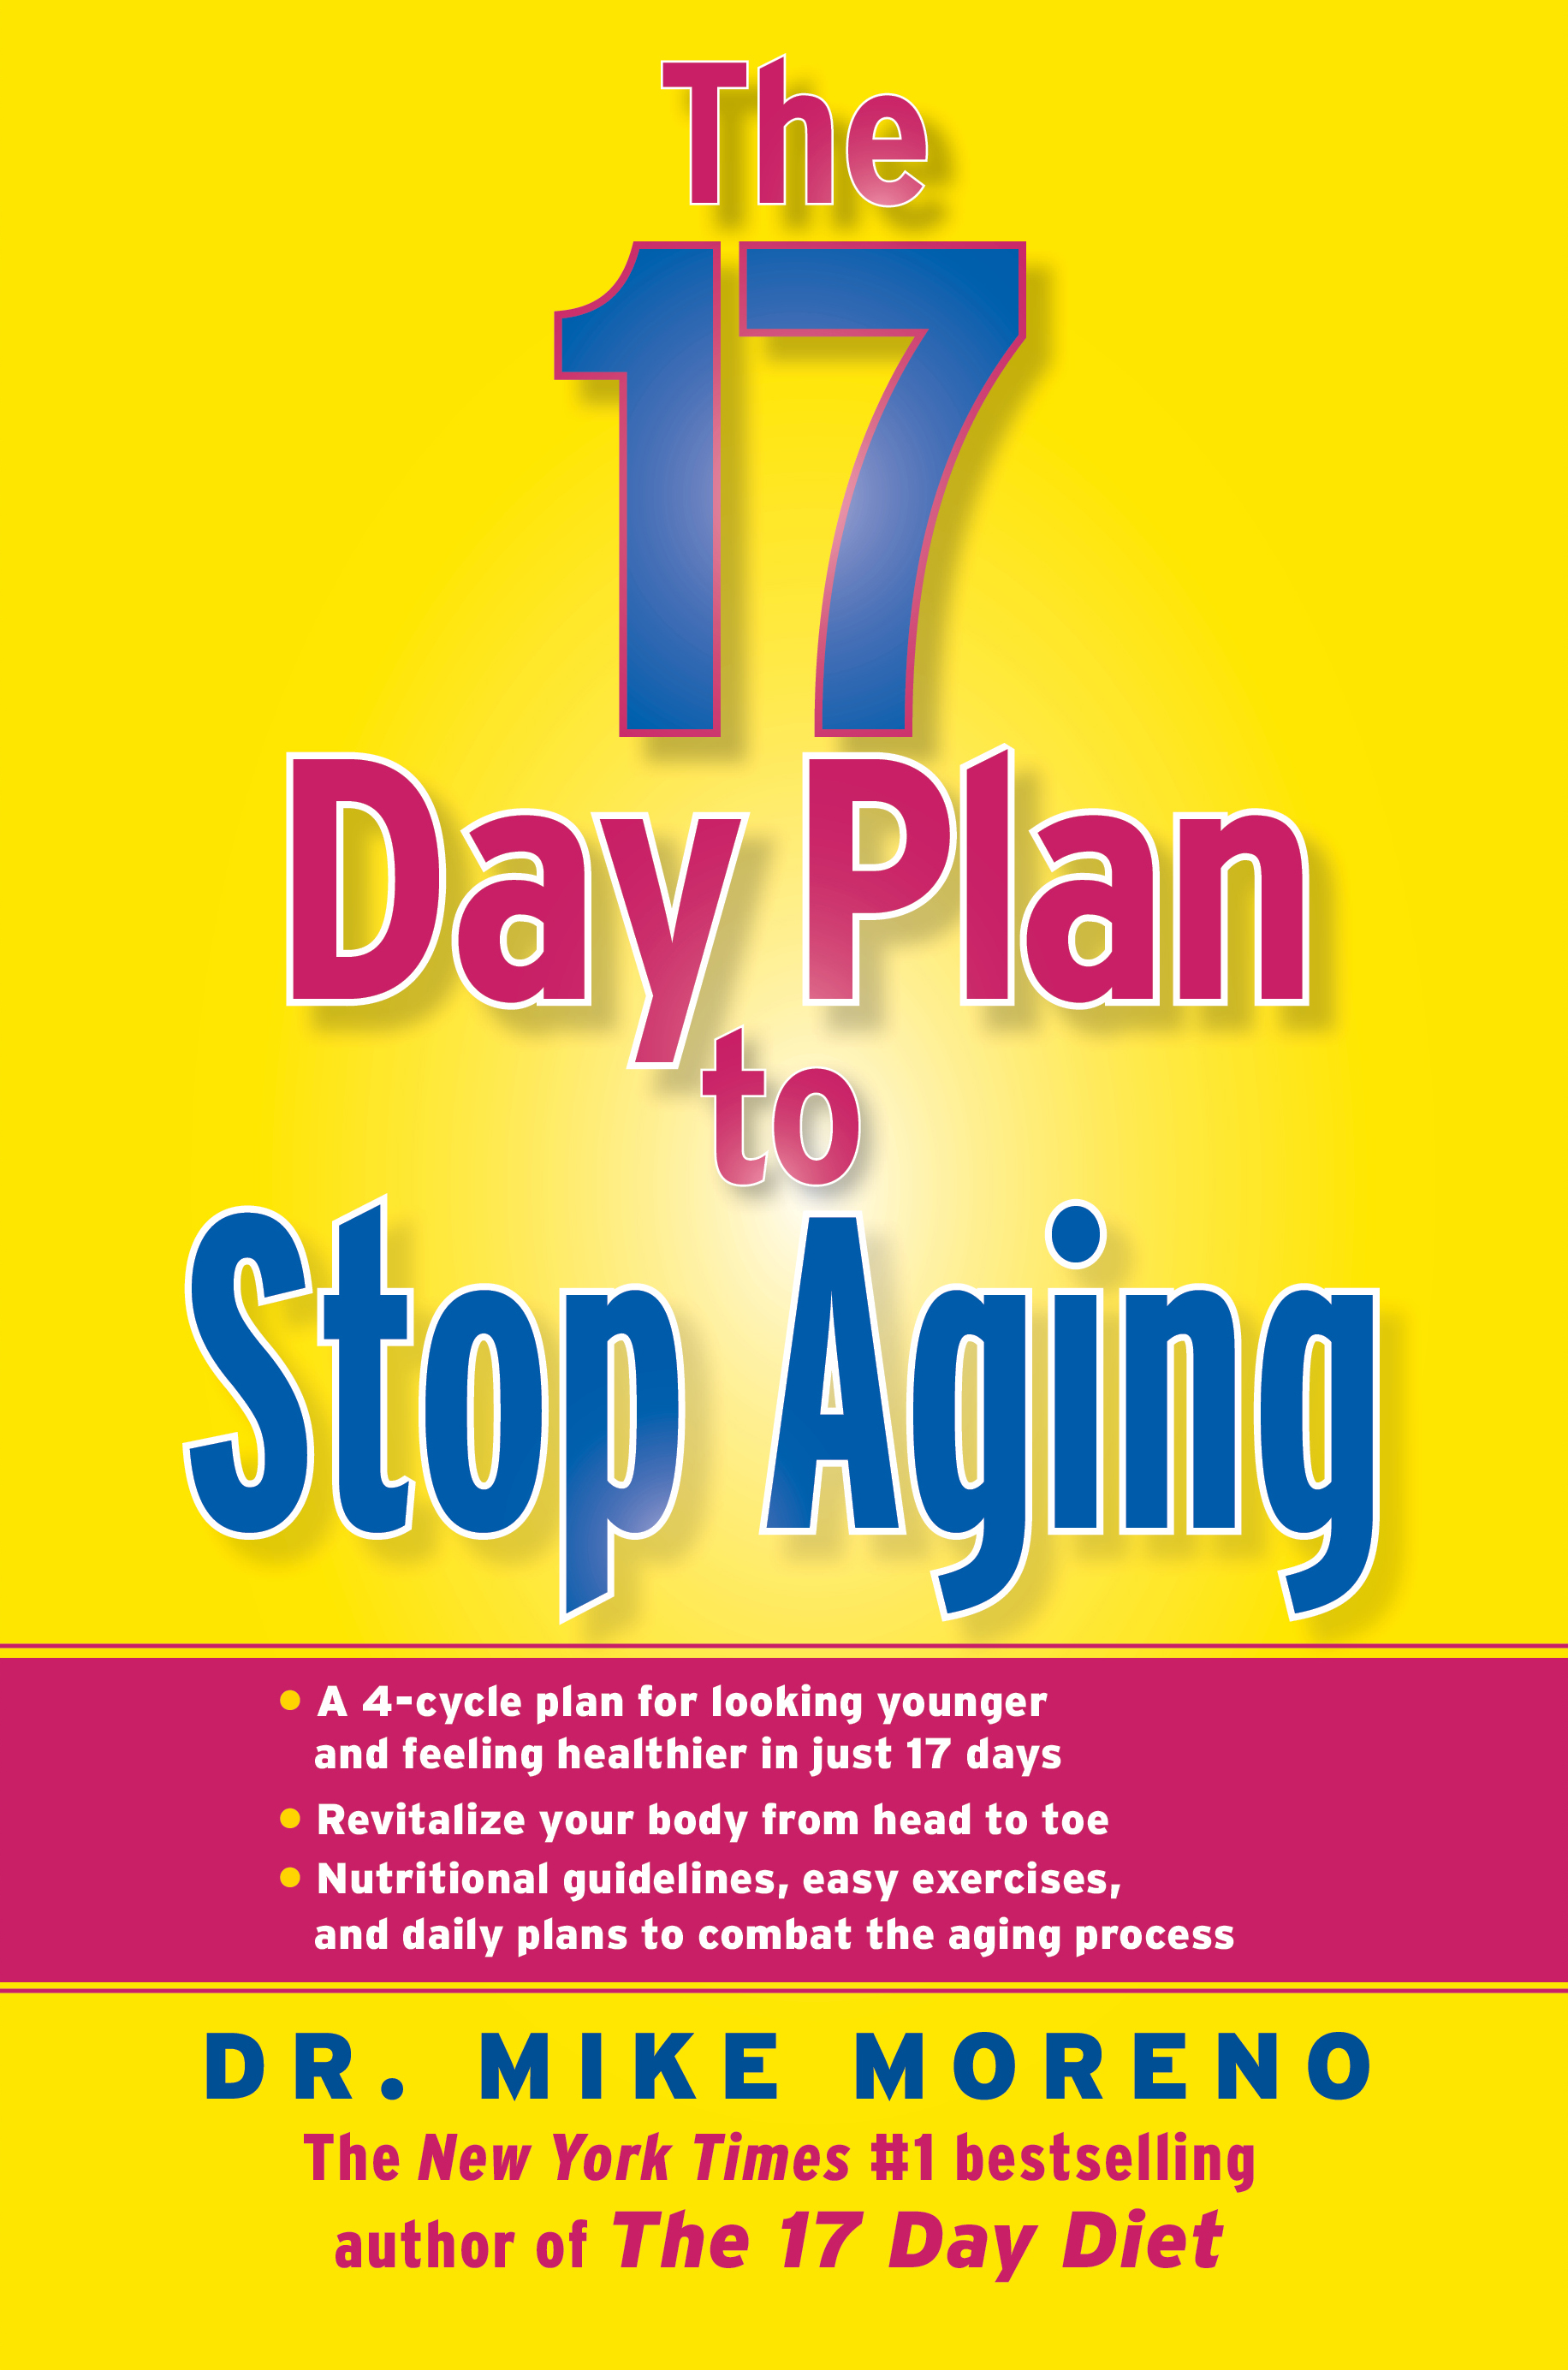 Book Cover Image (jpg): The 17 Day Plan to Stop Aging